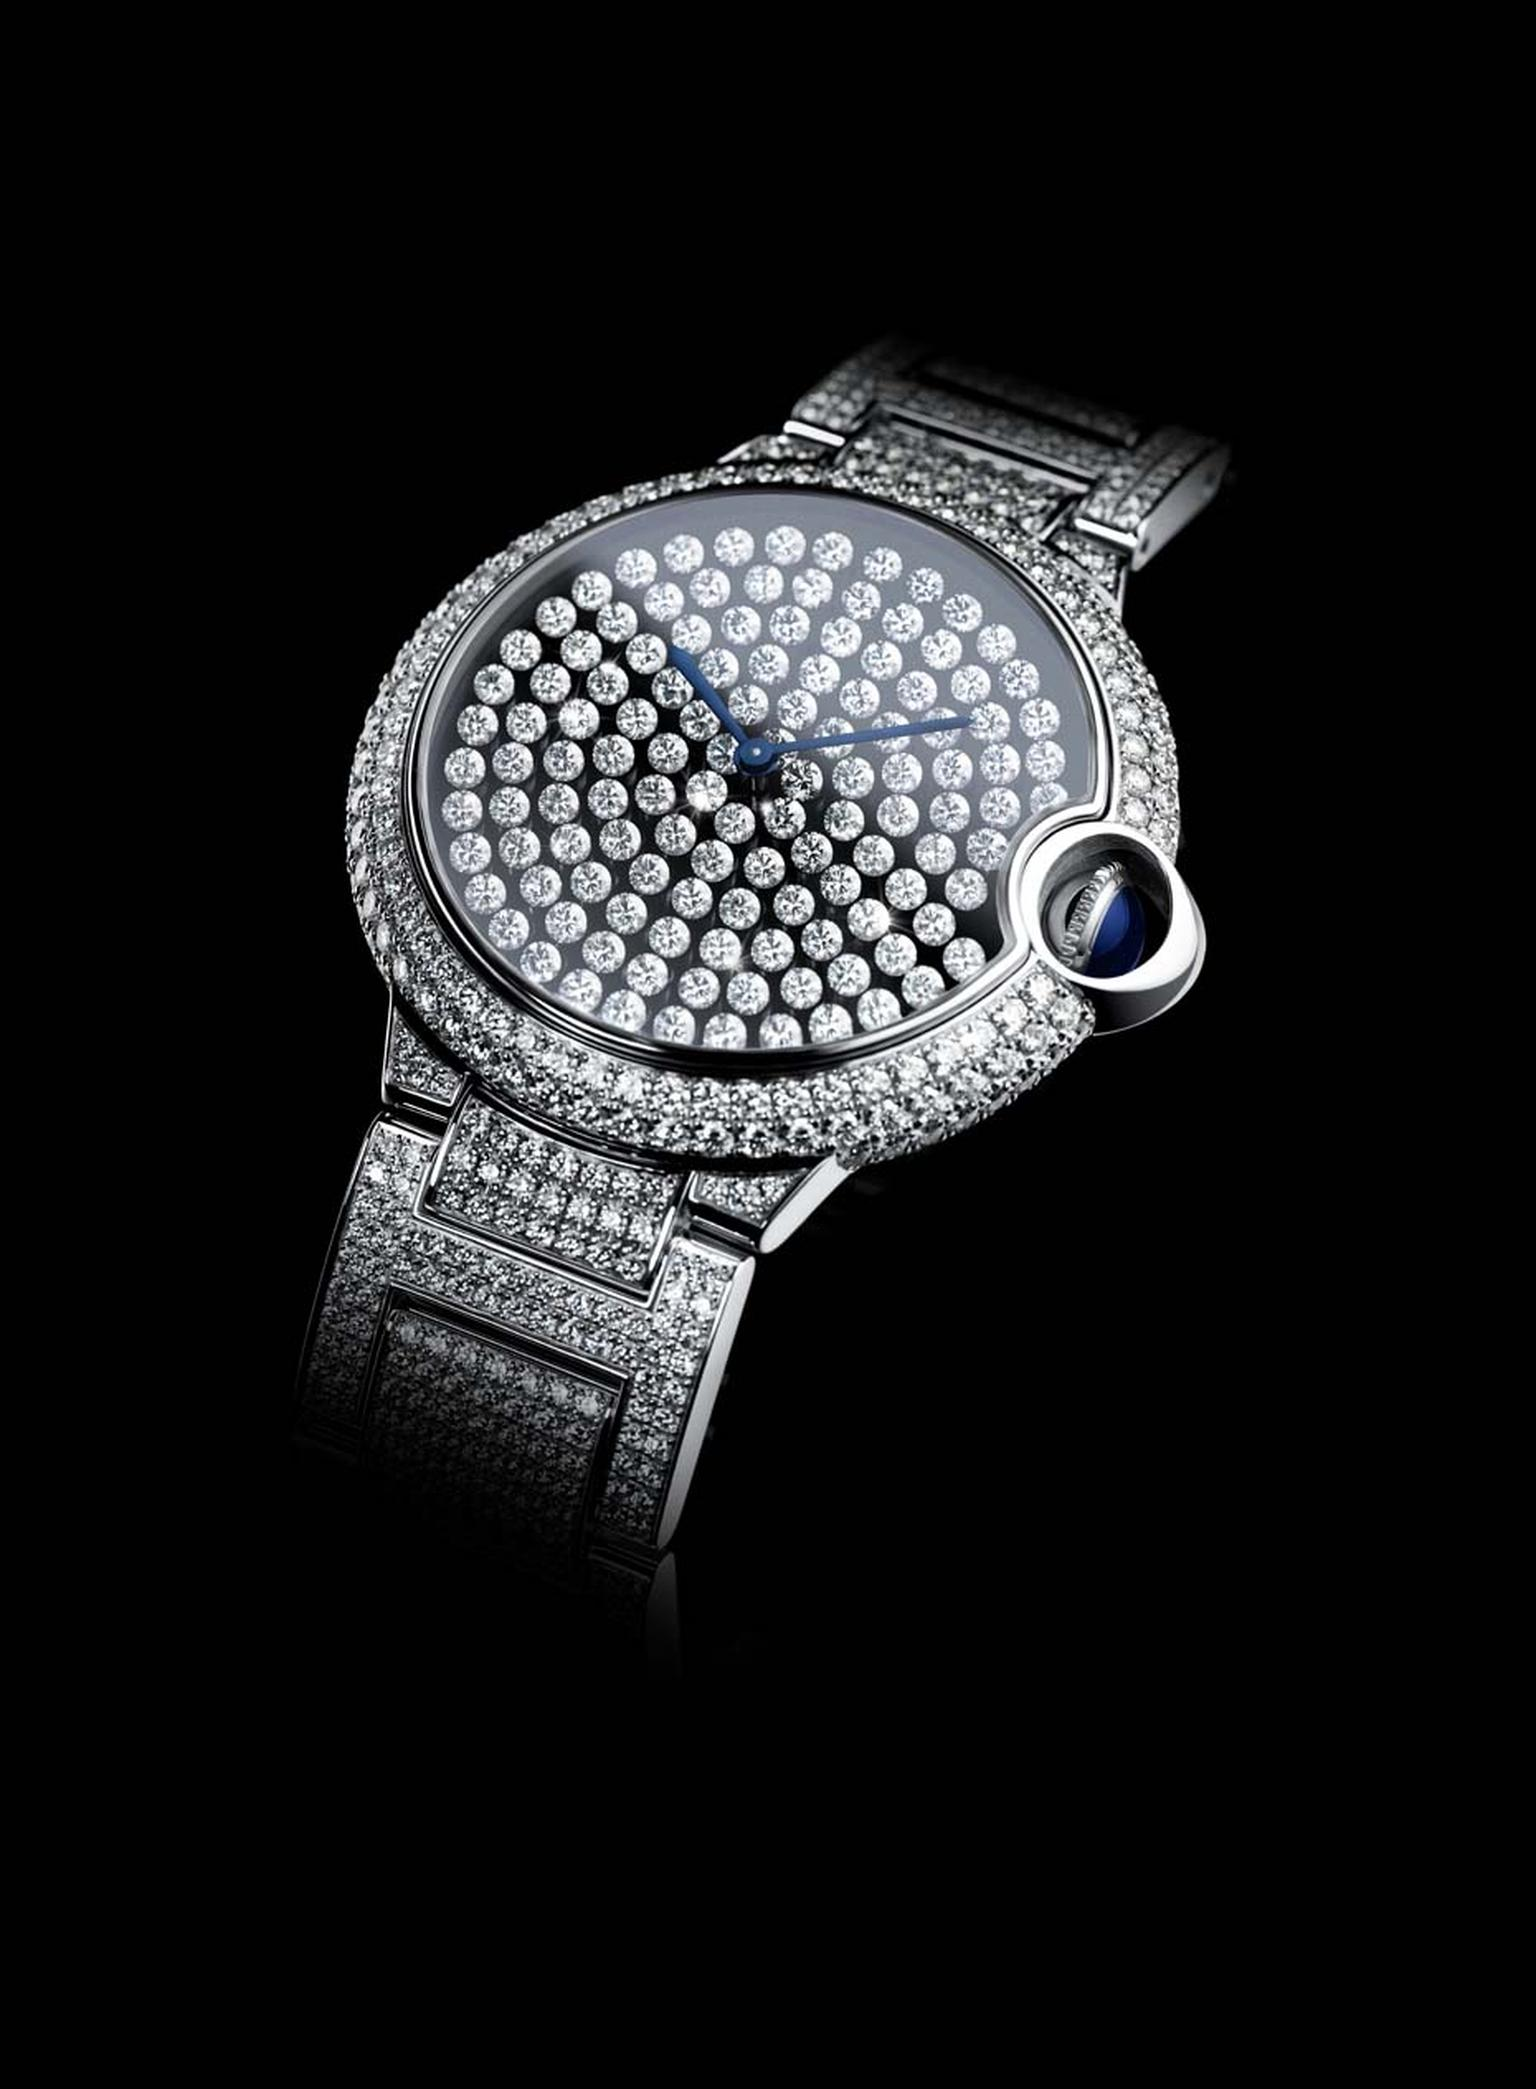 In this remarkable Cartier Ballon Bleu high jewellery watch, all the diamonds on the dial jiggle and sway in time to your movements. The team at Cartier has patented the new Vibrating Setting, which is invisible to the naked eye and allows the diamonds to